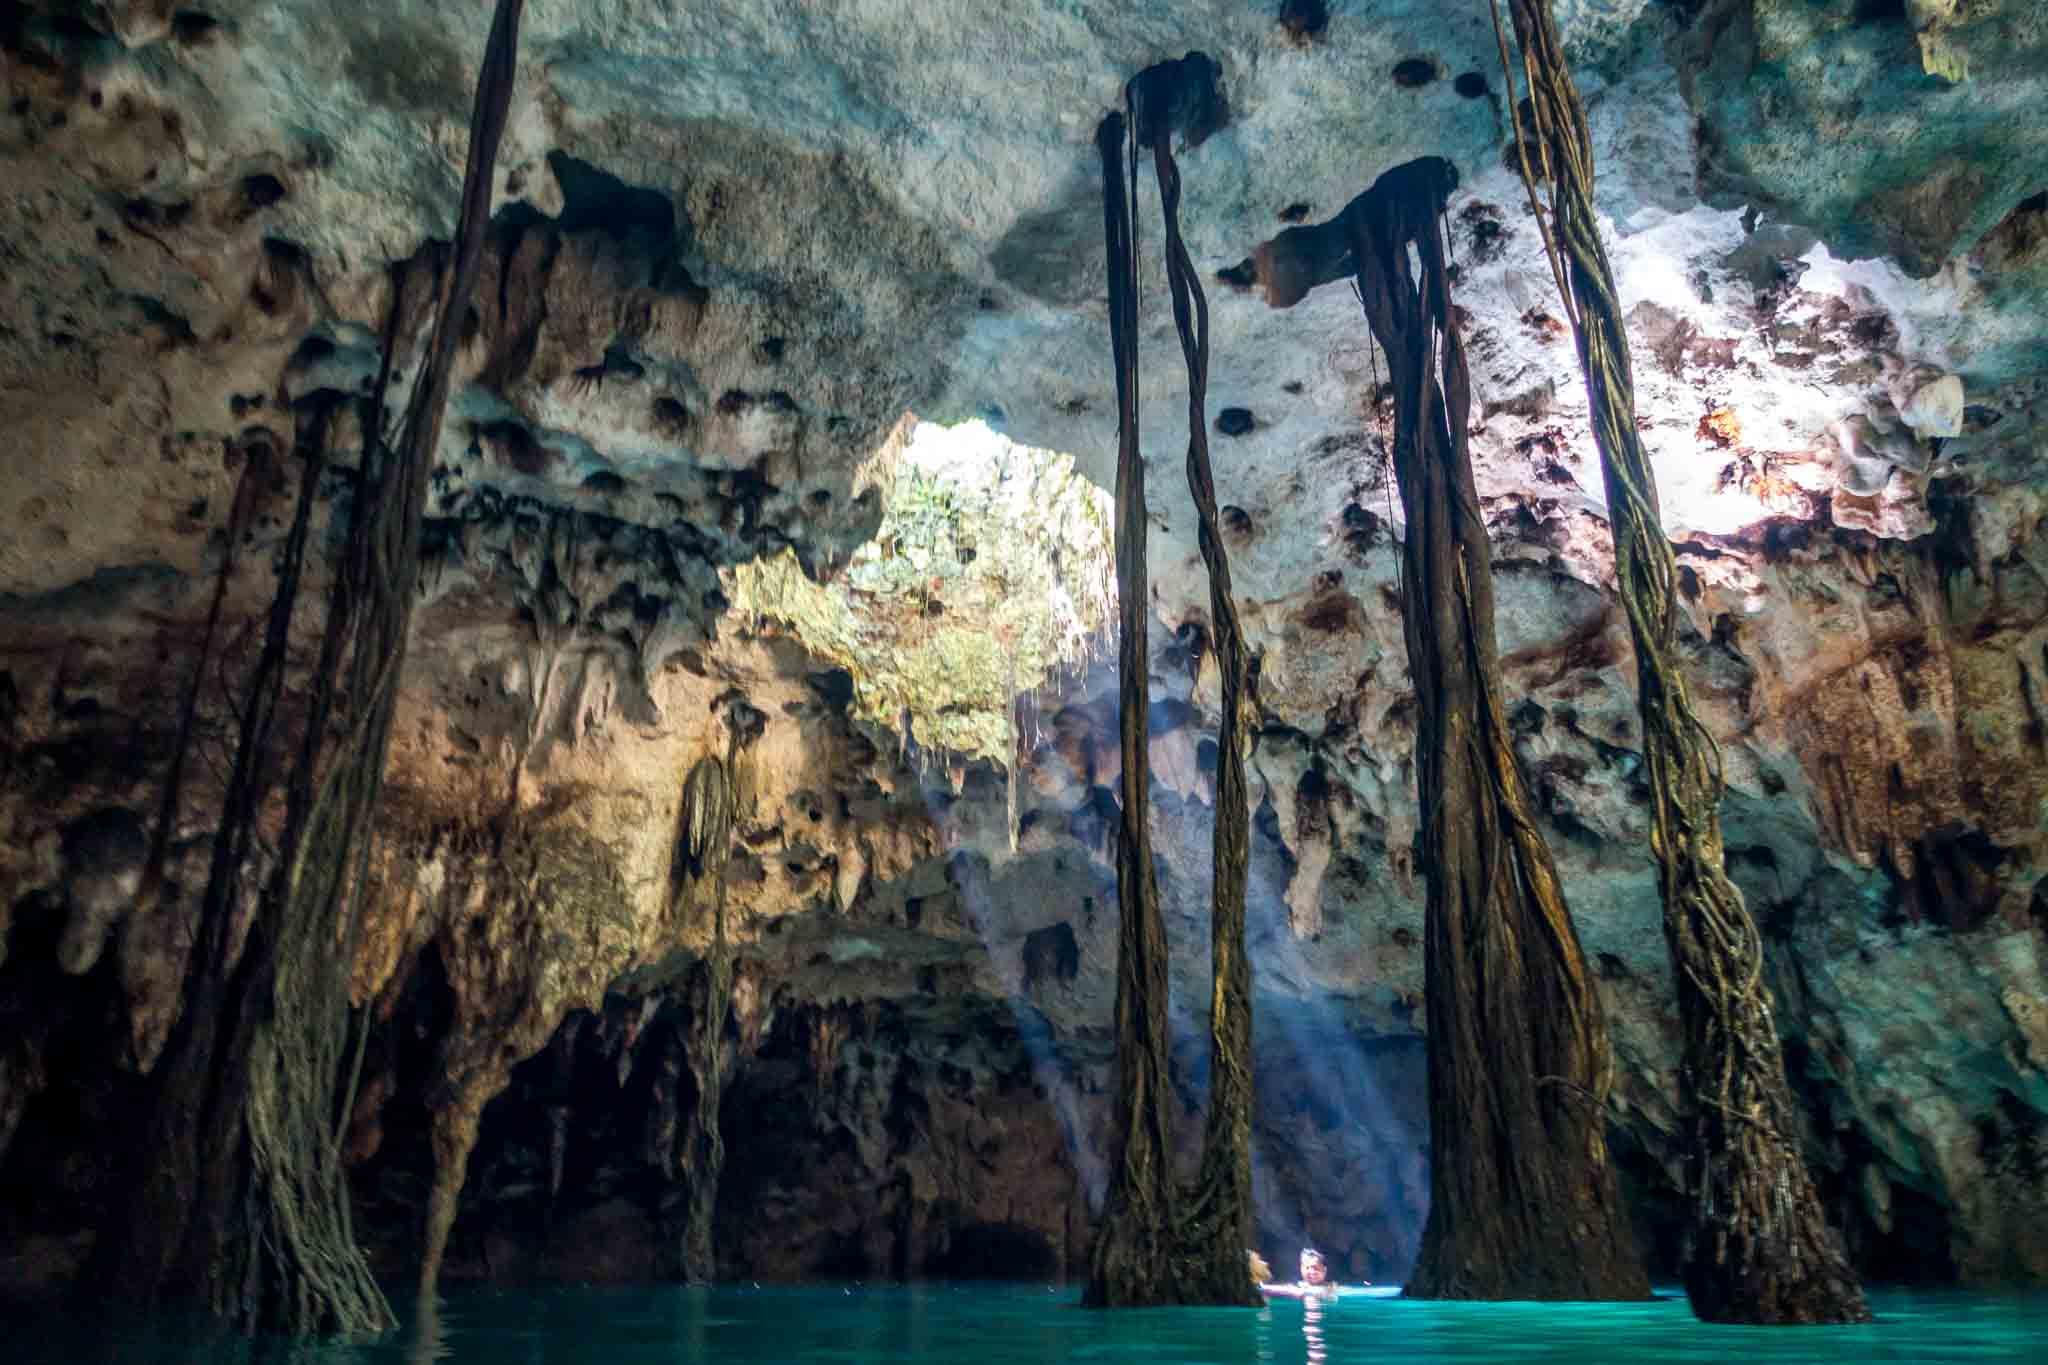 Inside a cave cenote with large roots near Cancun, Mexico